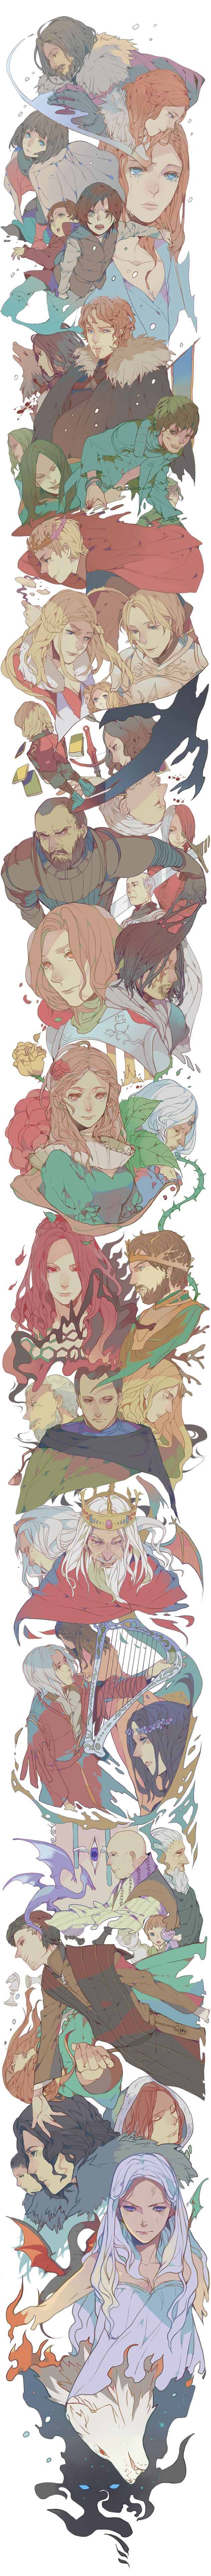 "A Game of Thrones, Manga Anime style (""Song of Ice and Fire"") 